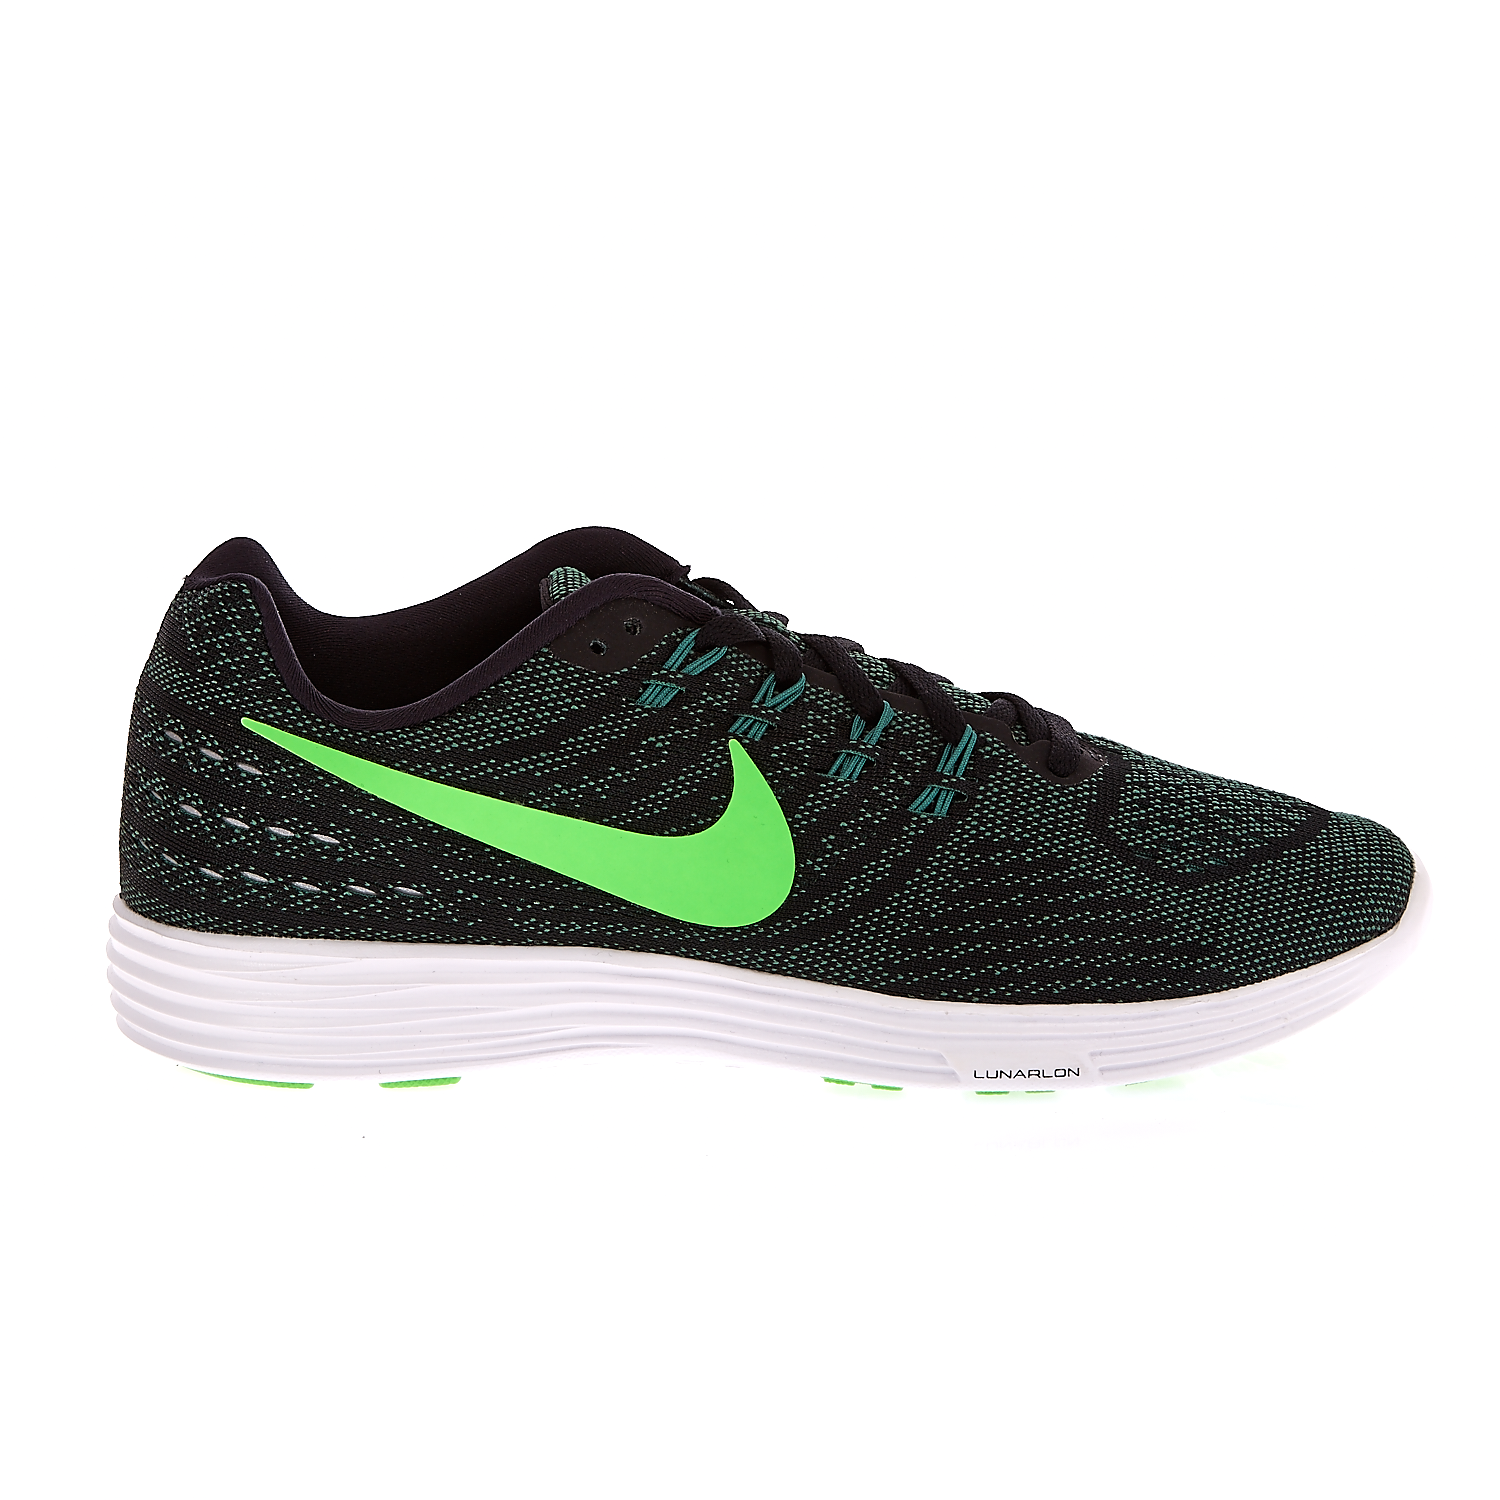 NIKE – Ανδρικά αθλητικά παπούτσια NIKE LUNARTEMPO 2 πράσινα. Factoryoutlet f972cb42041